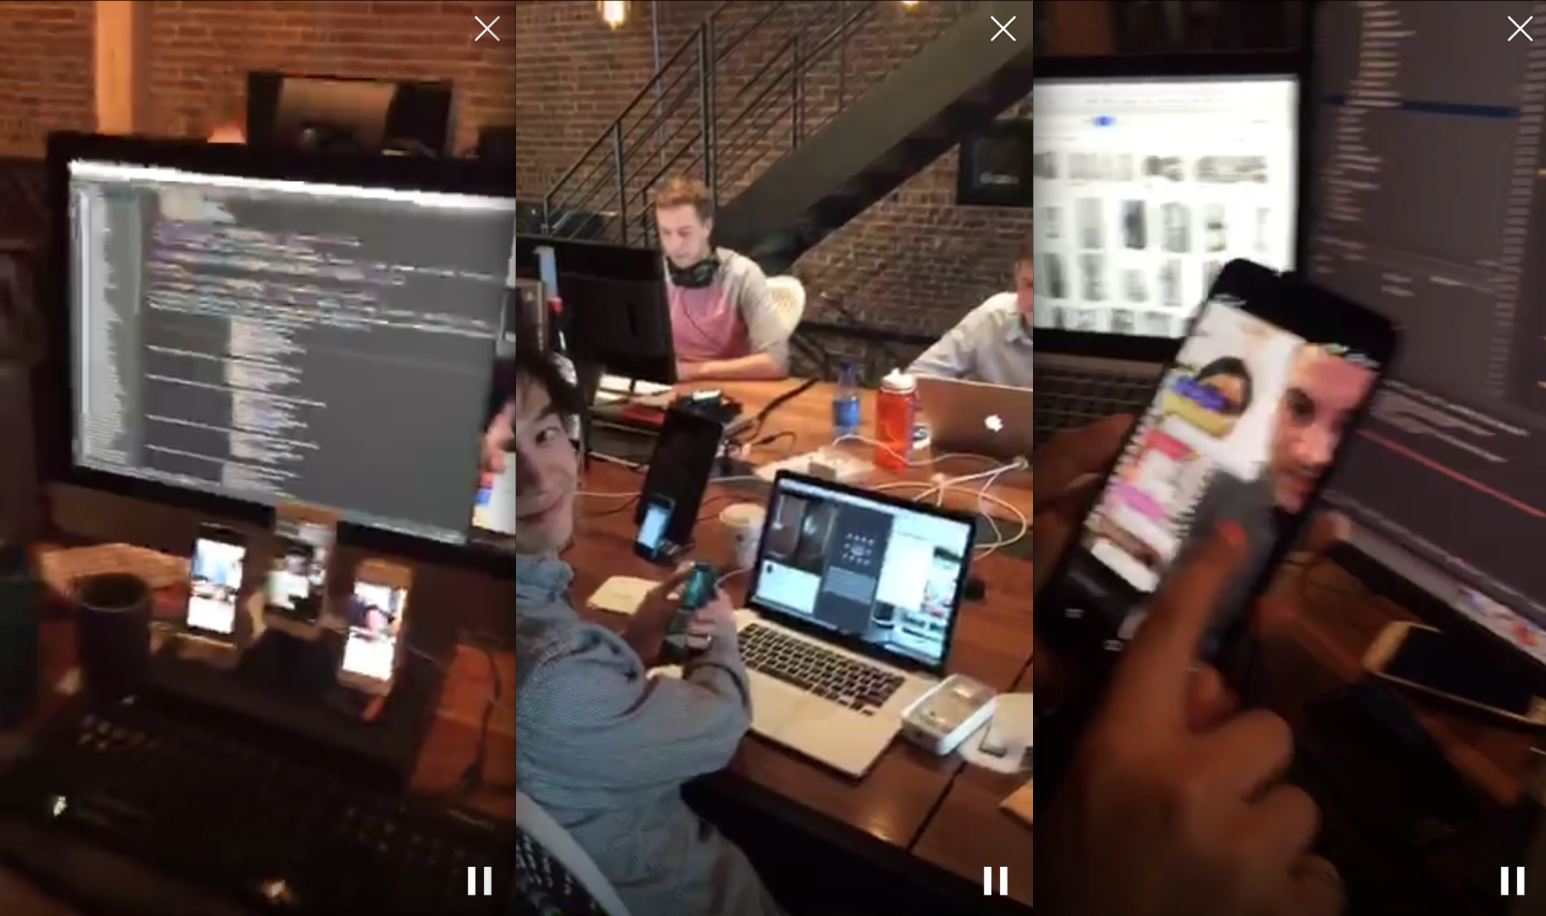 The Android team is rolling out the new app. (Screengrab: Jack Smith IV)